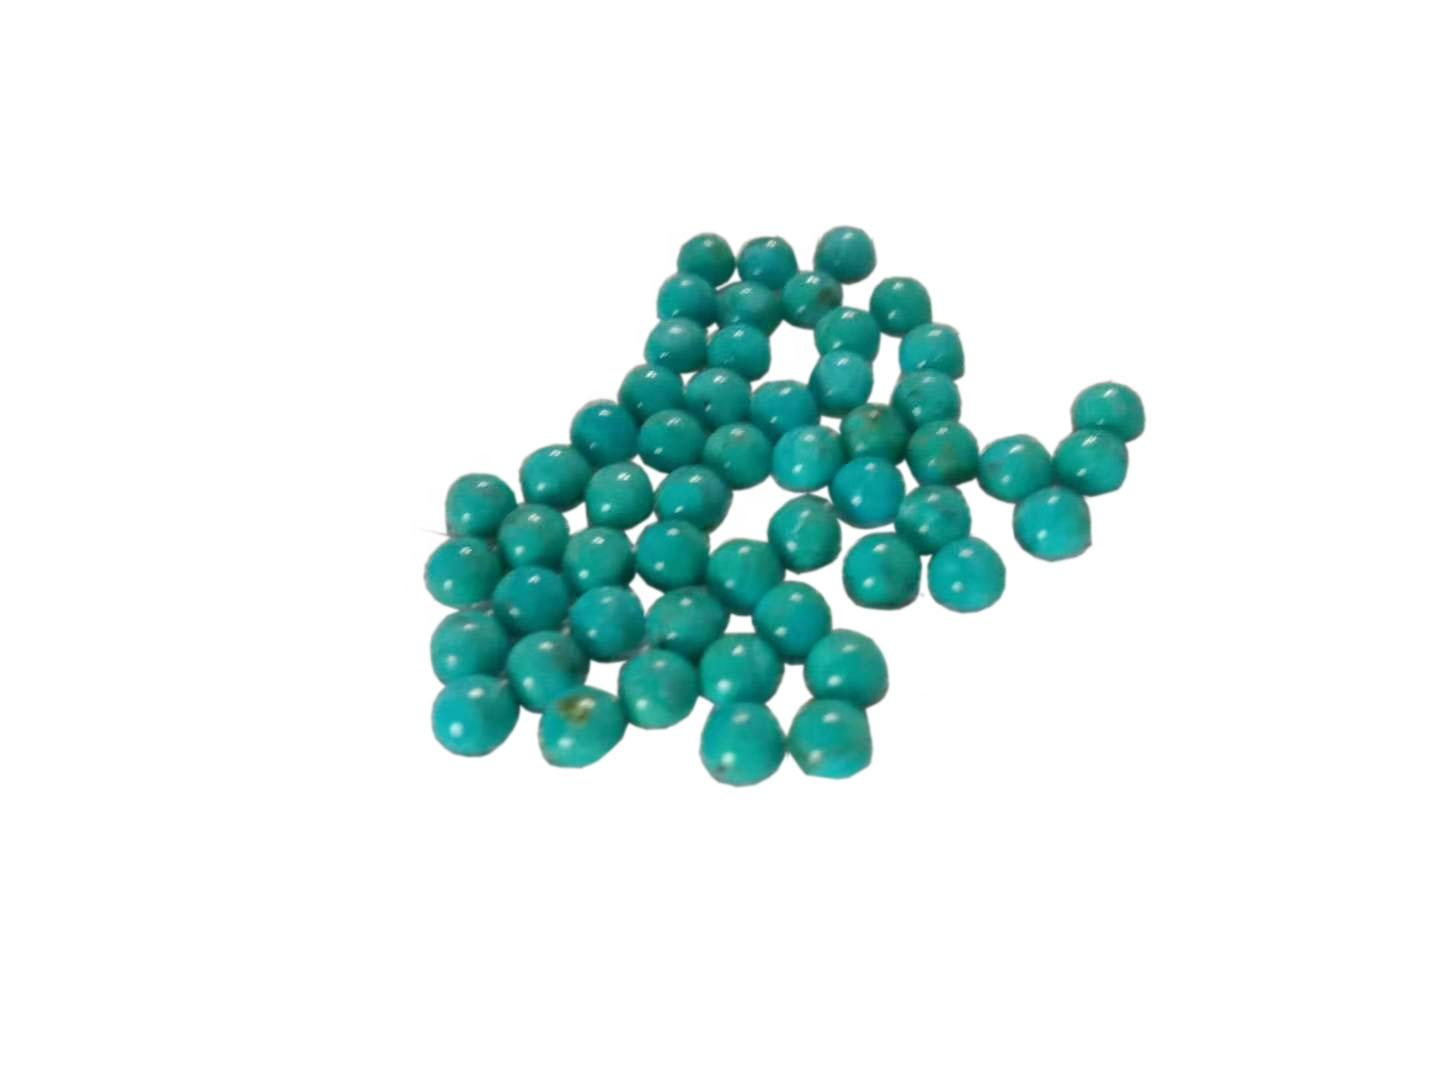 Natural Really Gemstones Turquoise 4mm round cabochon Round Turquoise Cabochon Gemstones Back Side Flat Turquoise Sky Blue